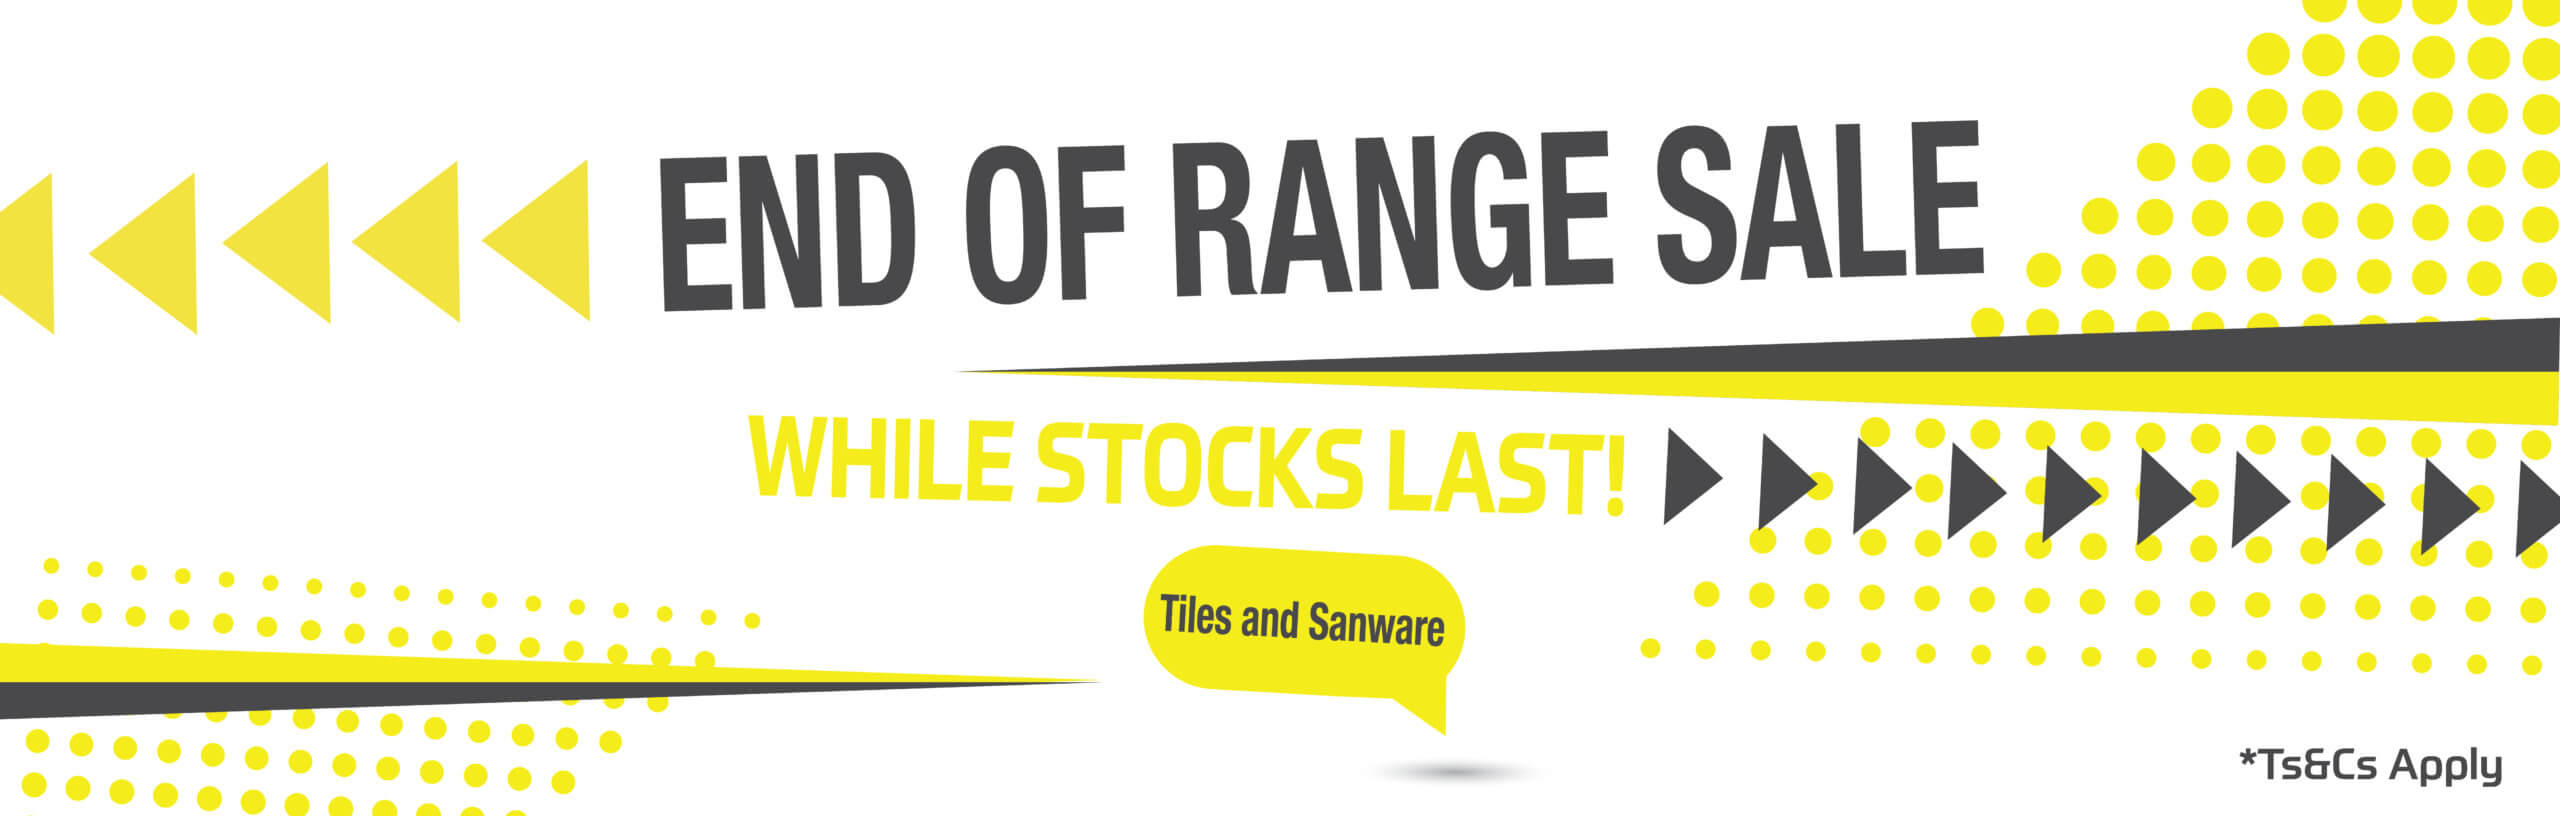 Stiles End Of Range Sale